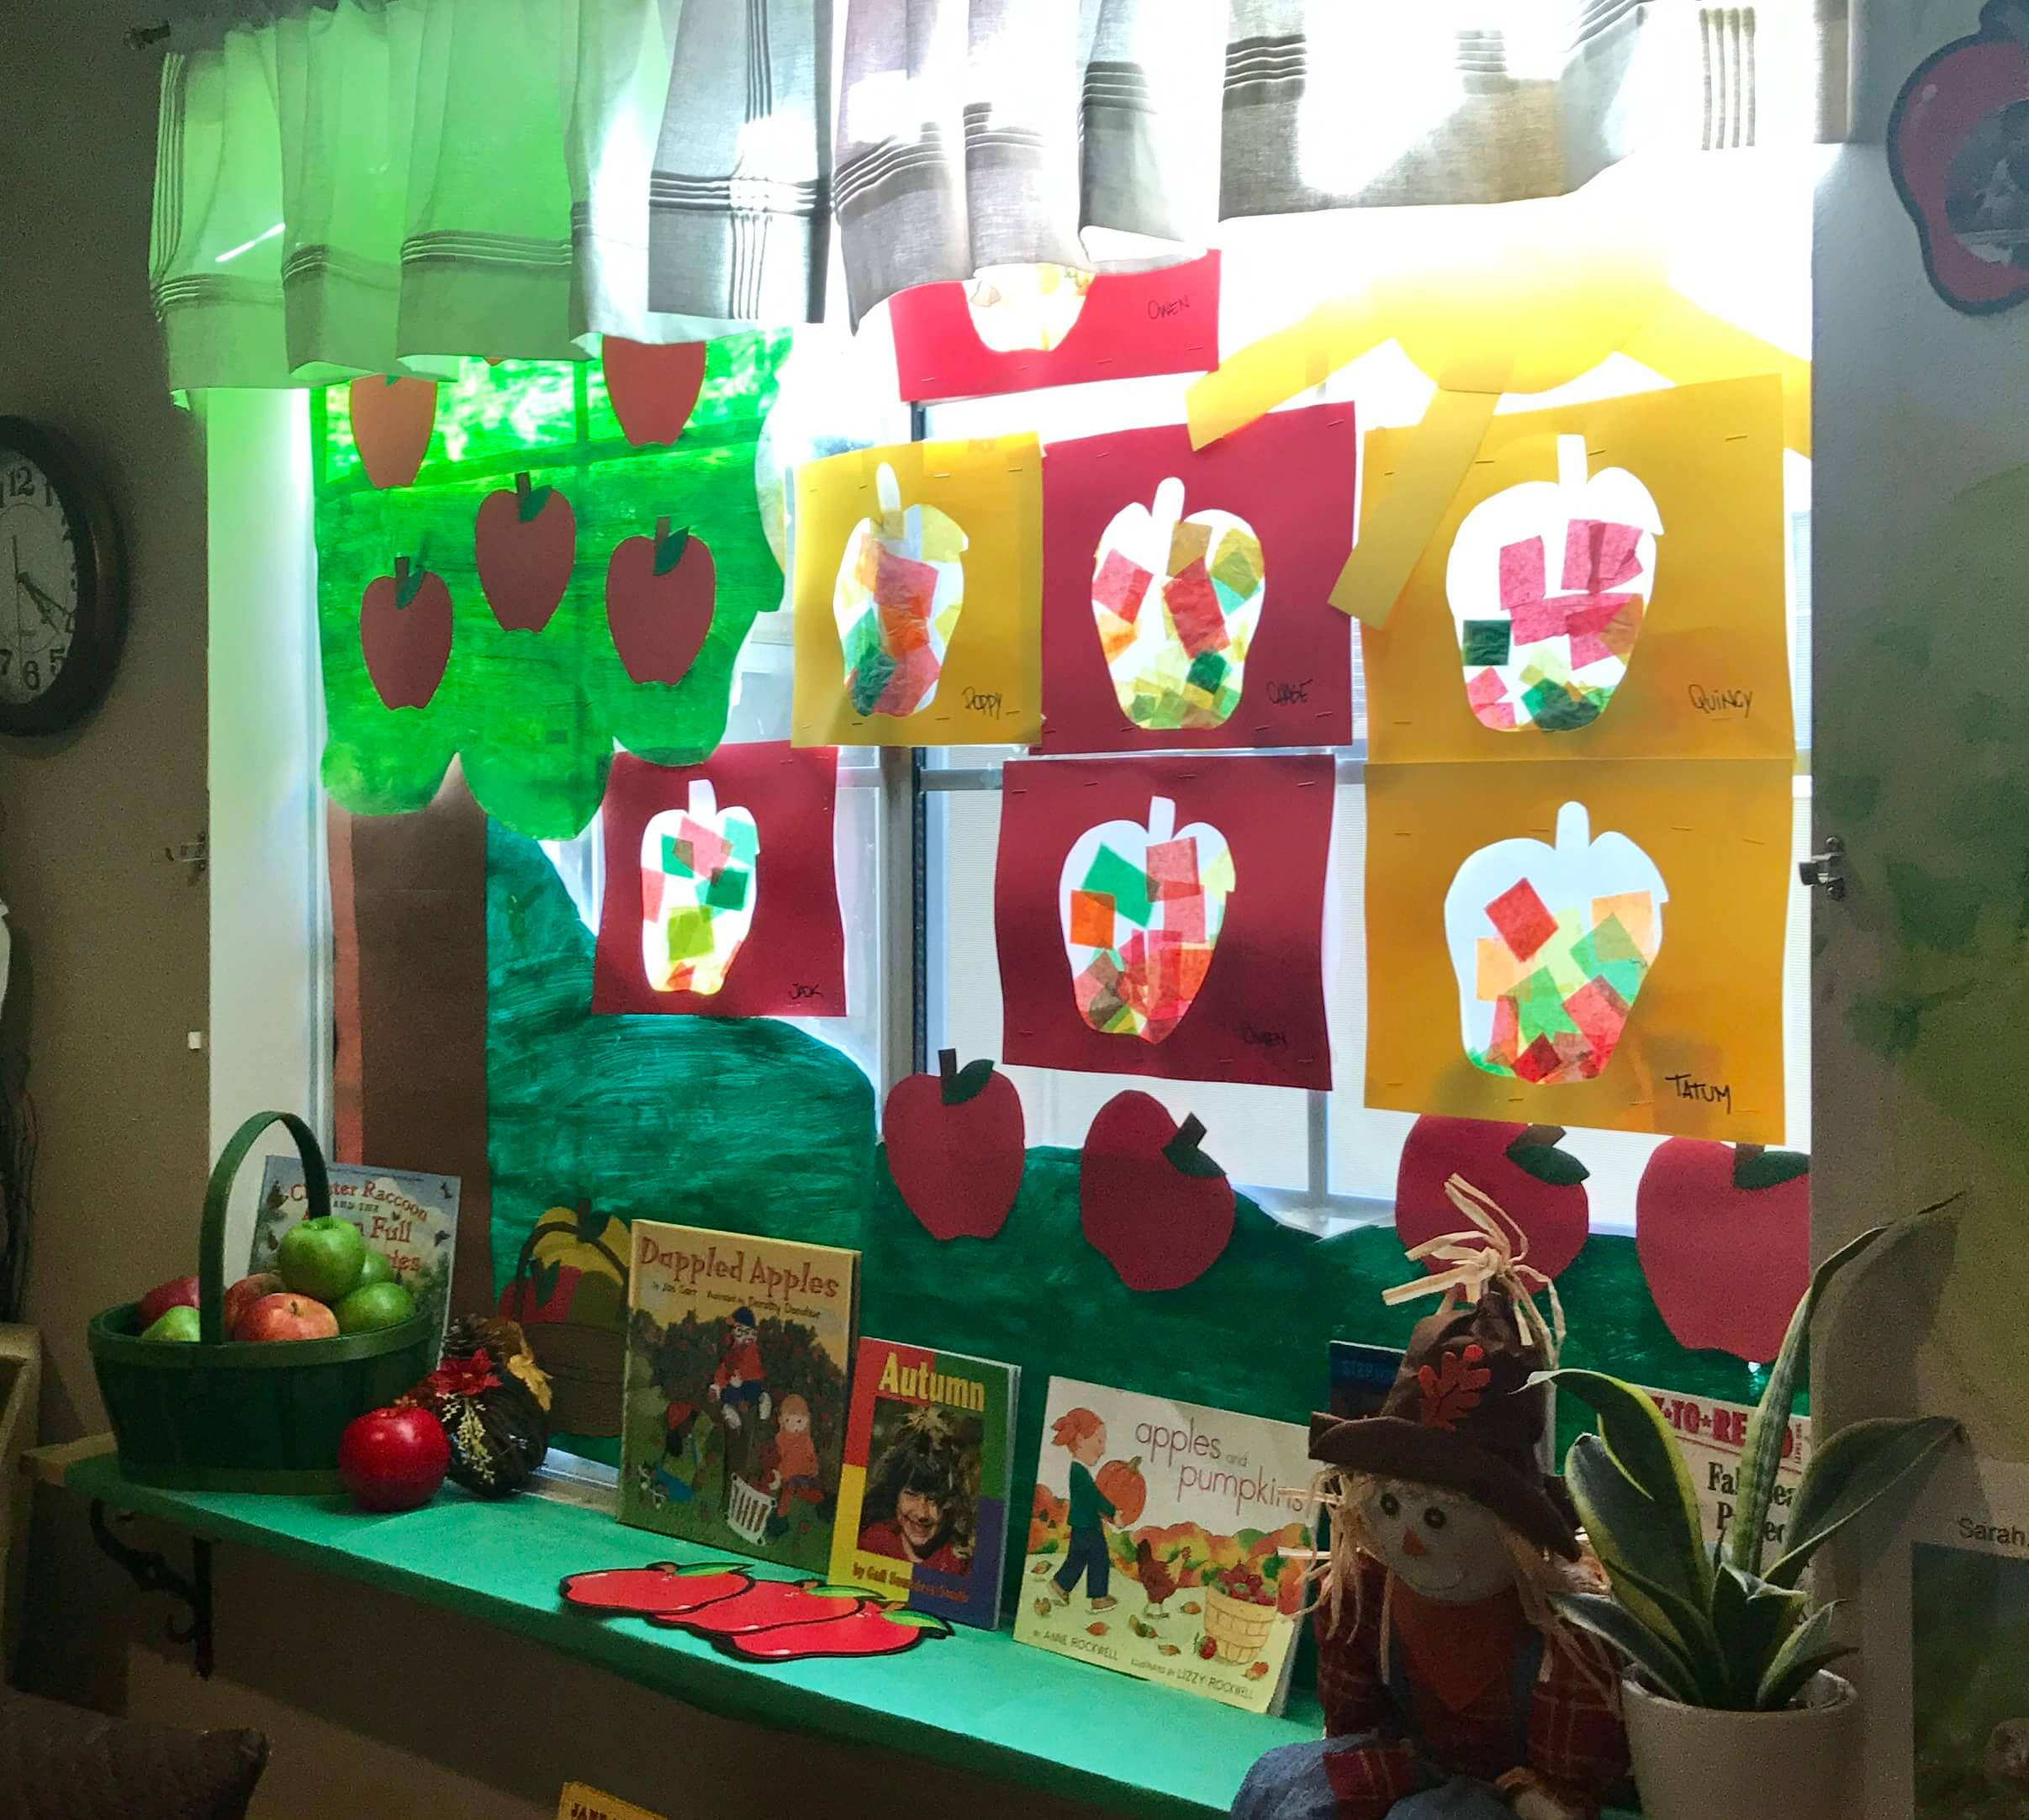 ecda's window with art projects made from the kids